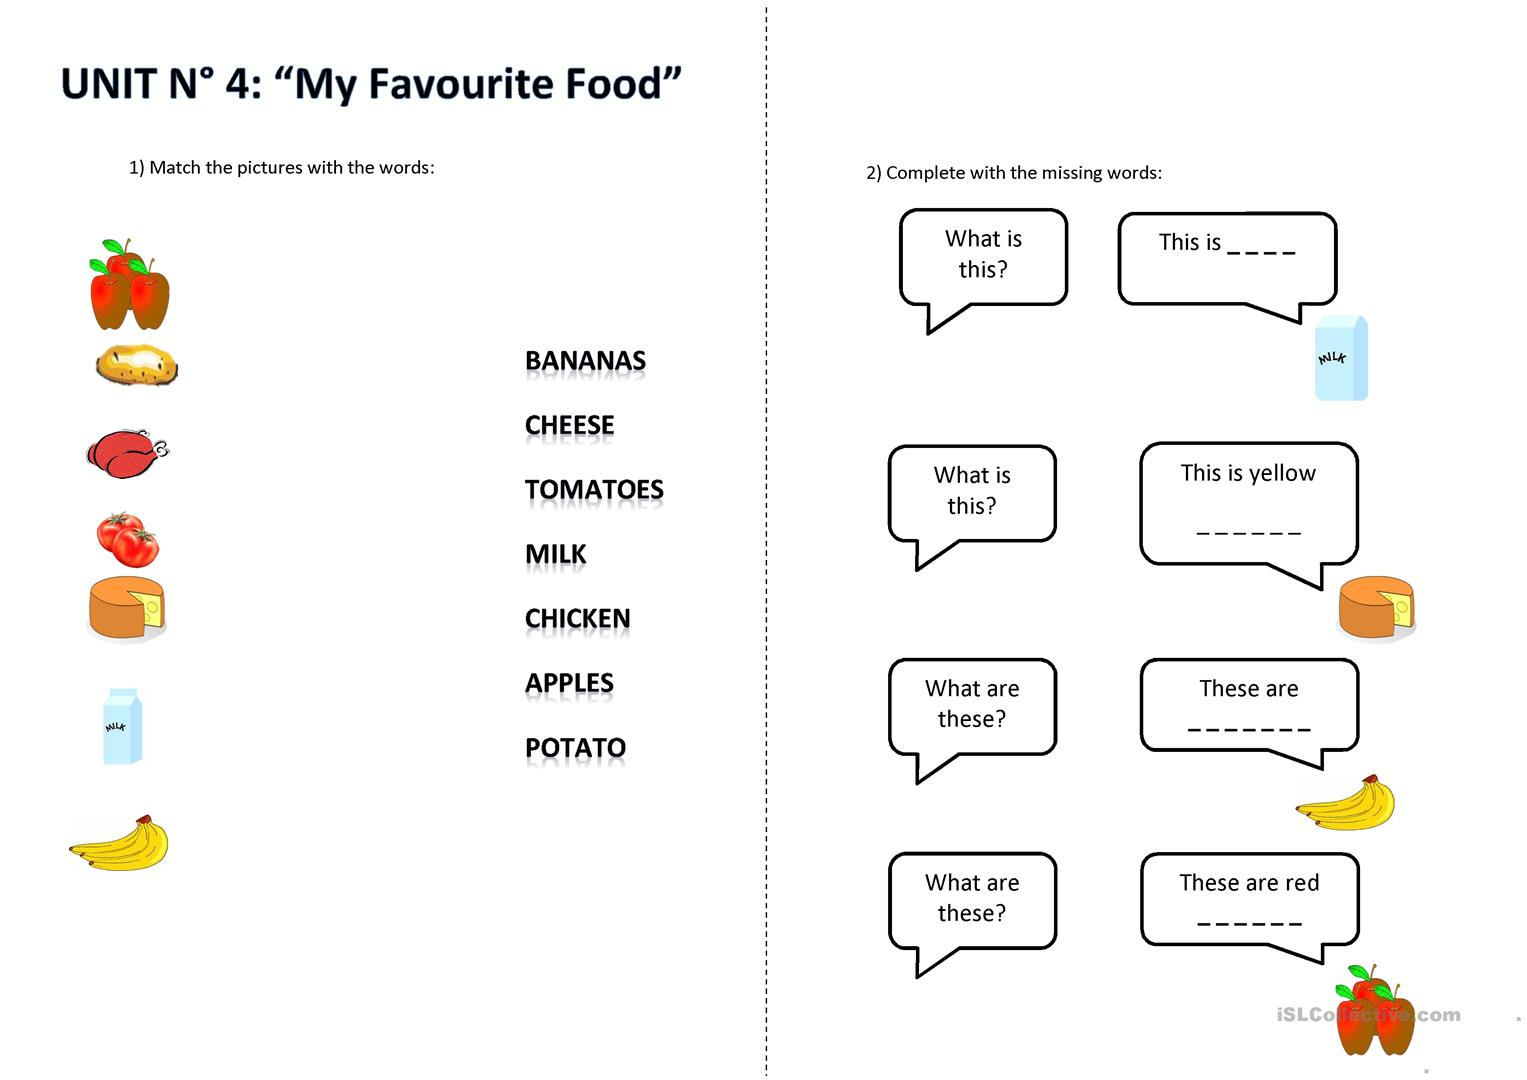 What Is This What Are These Food Items Worksheet